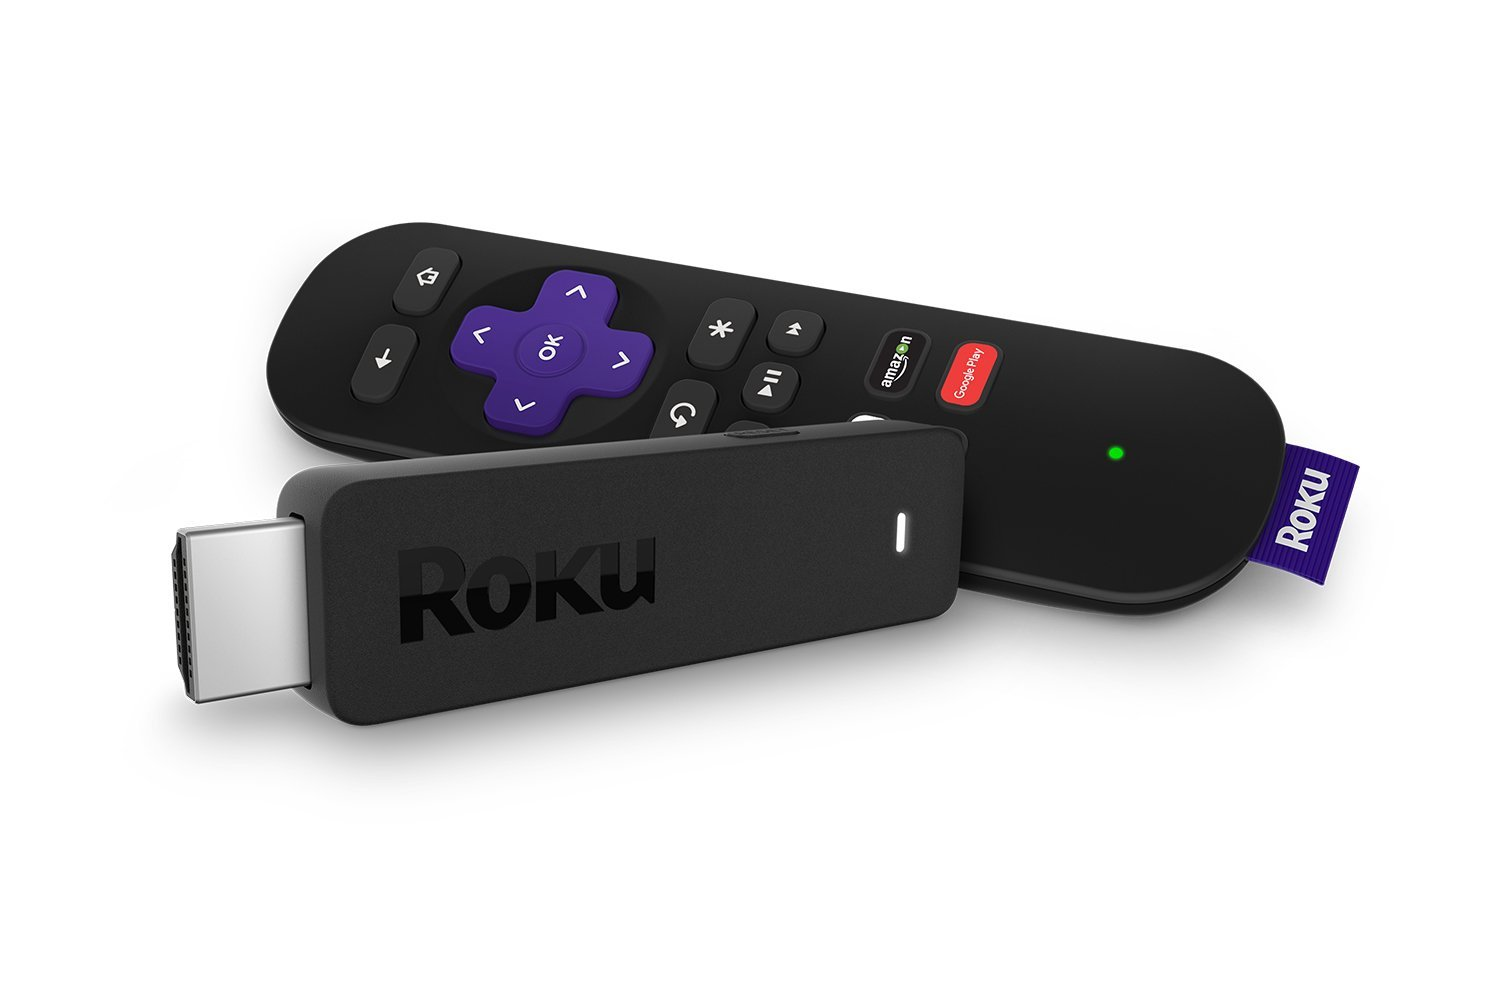 Roku Streaming Sticks